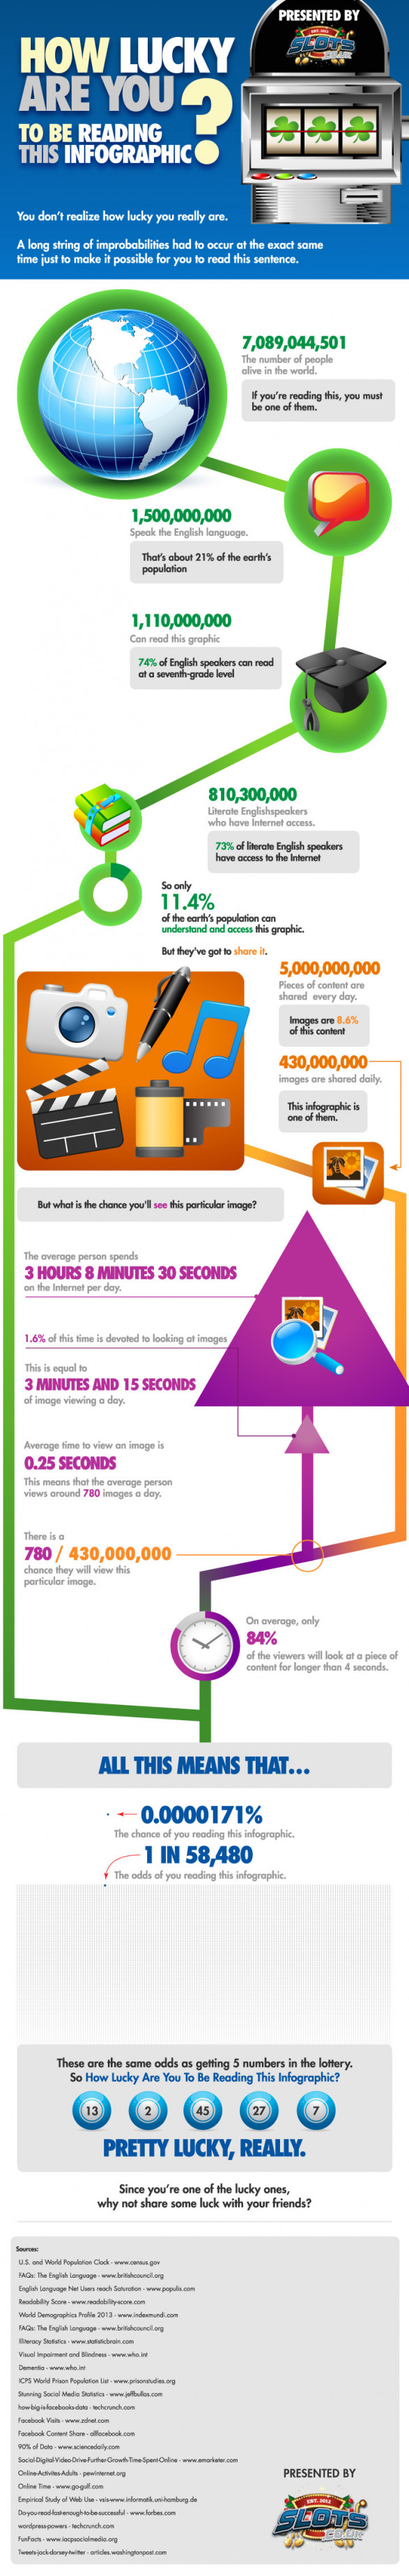 How Lucky Are You To Be Reading This Infographic?